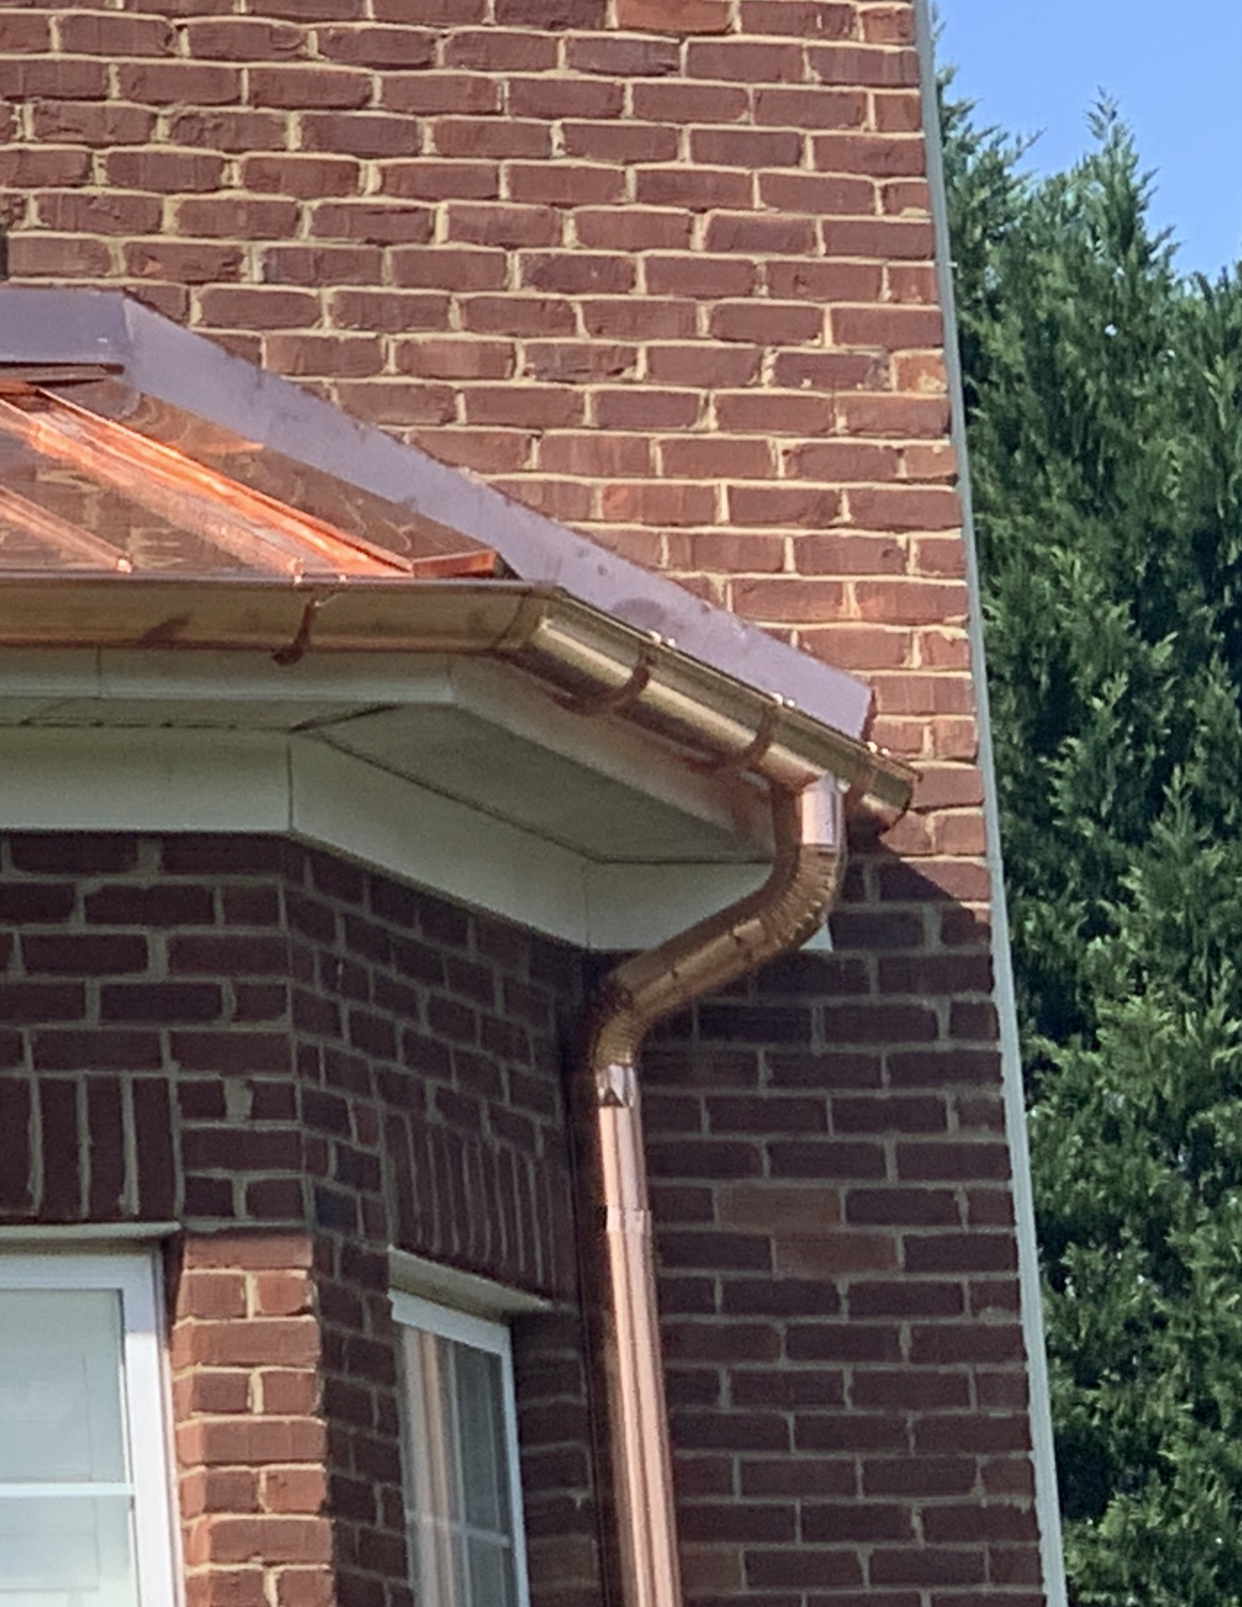 Handmade standing seam copper roof and half round gutters downspouts and hangers on a bay window